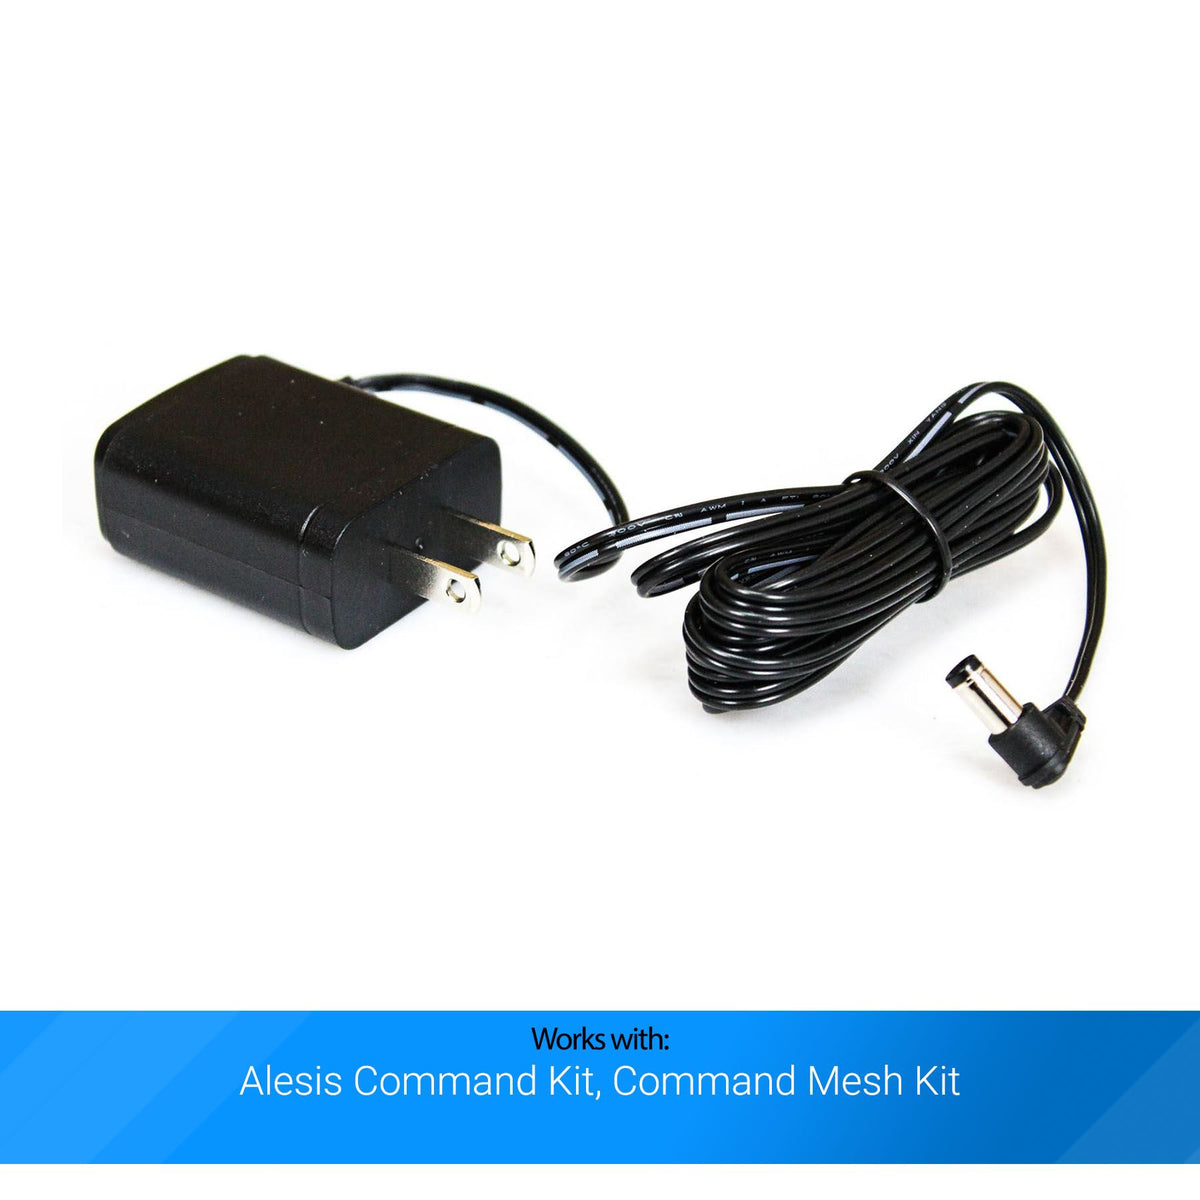 Alesis Command Kit / Command Mesh Kit Power Adapter